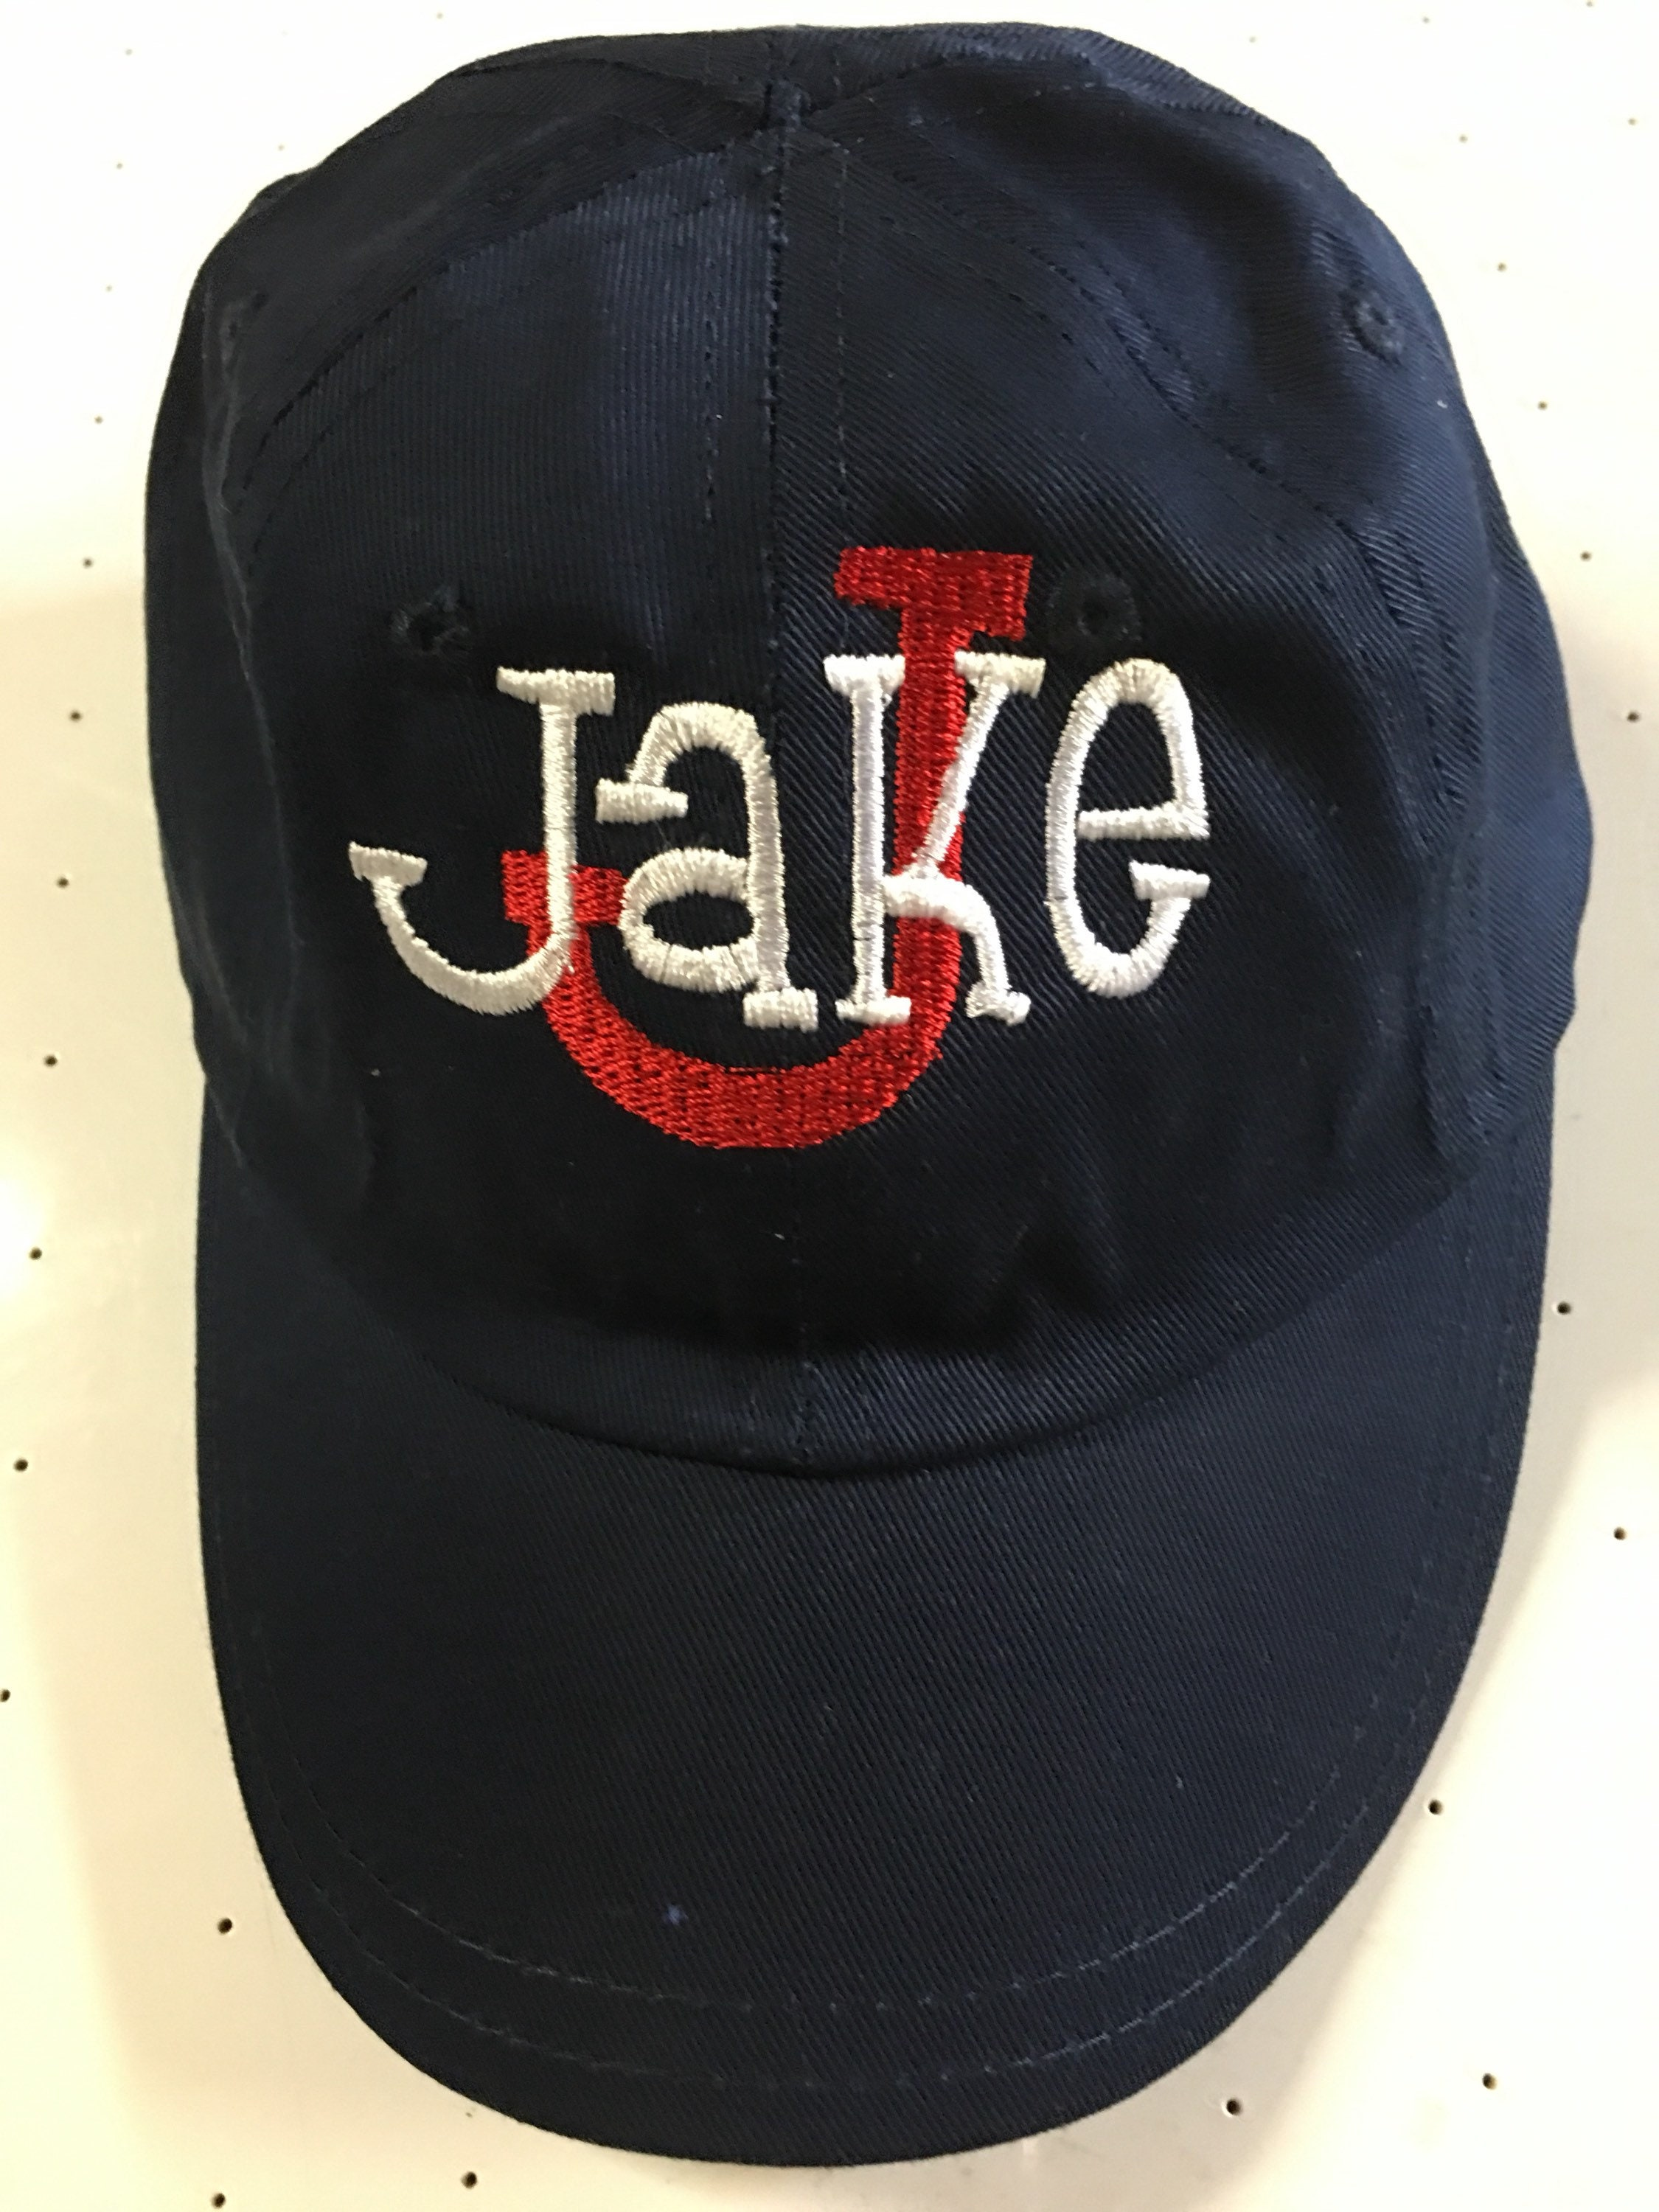 2a2e34776dc Personalized Toddler Baseball Hats - Parchment N Lead